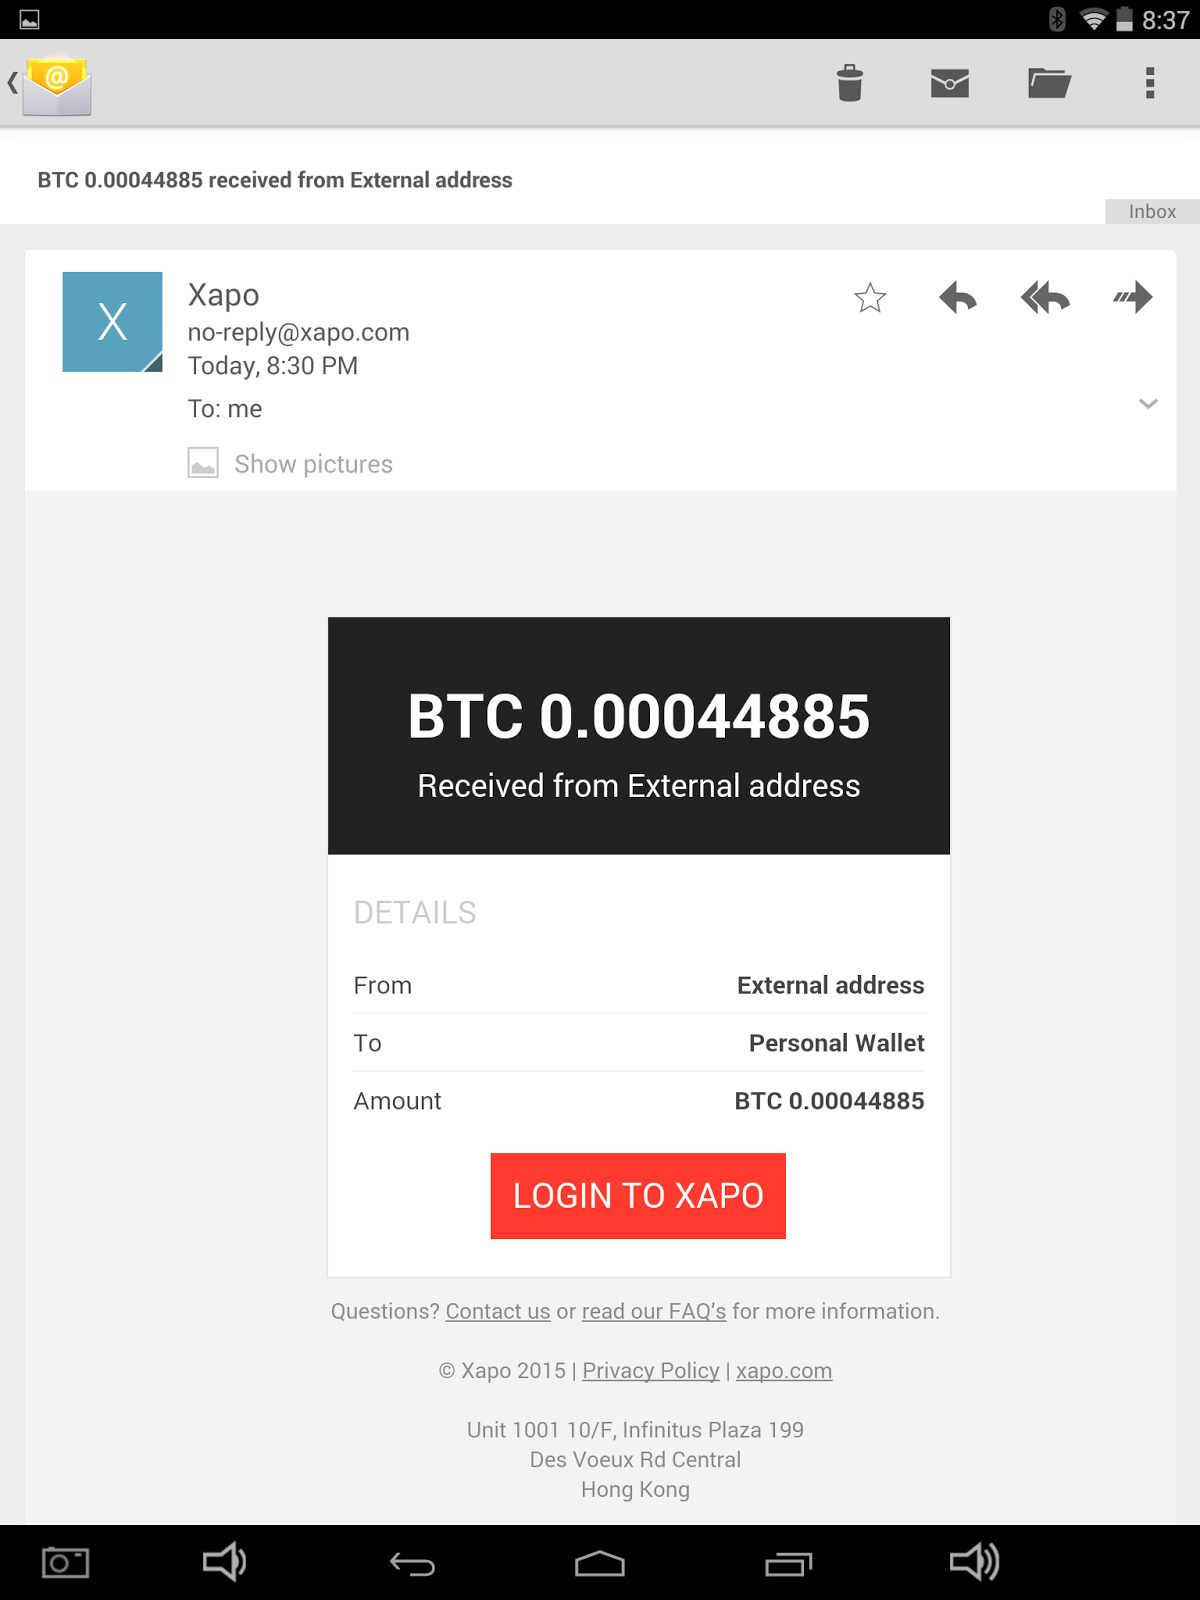 Get Free 84000 Satoshi daily or 3500 Satoshi Hourly Without Doing Anything Complete ...